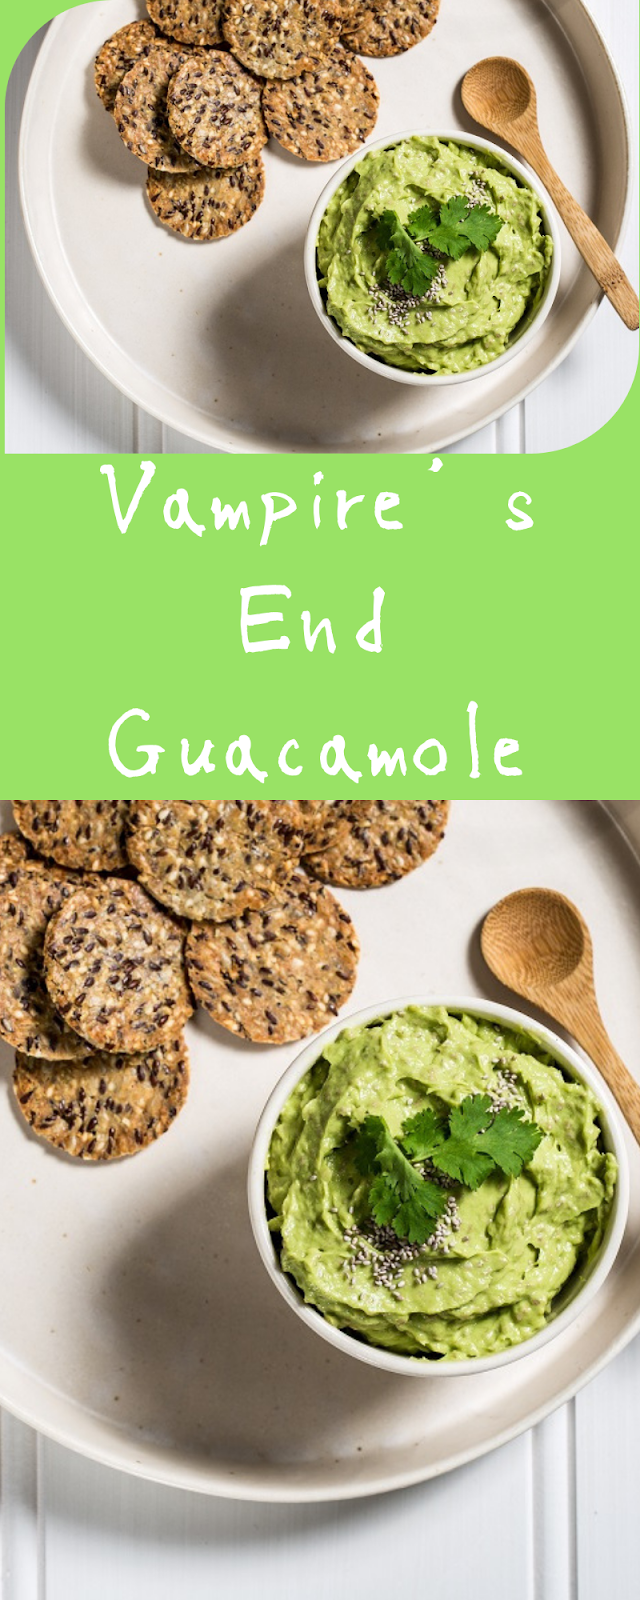 How To Make Vampire's End Guacamole